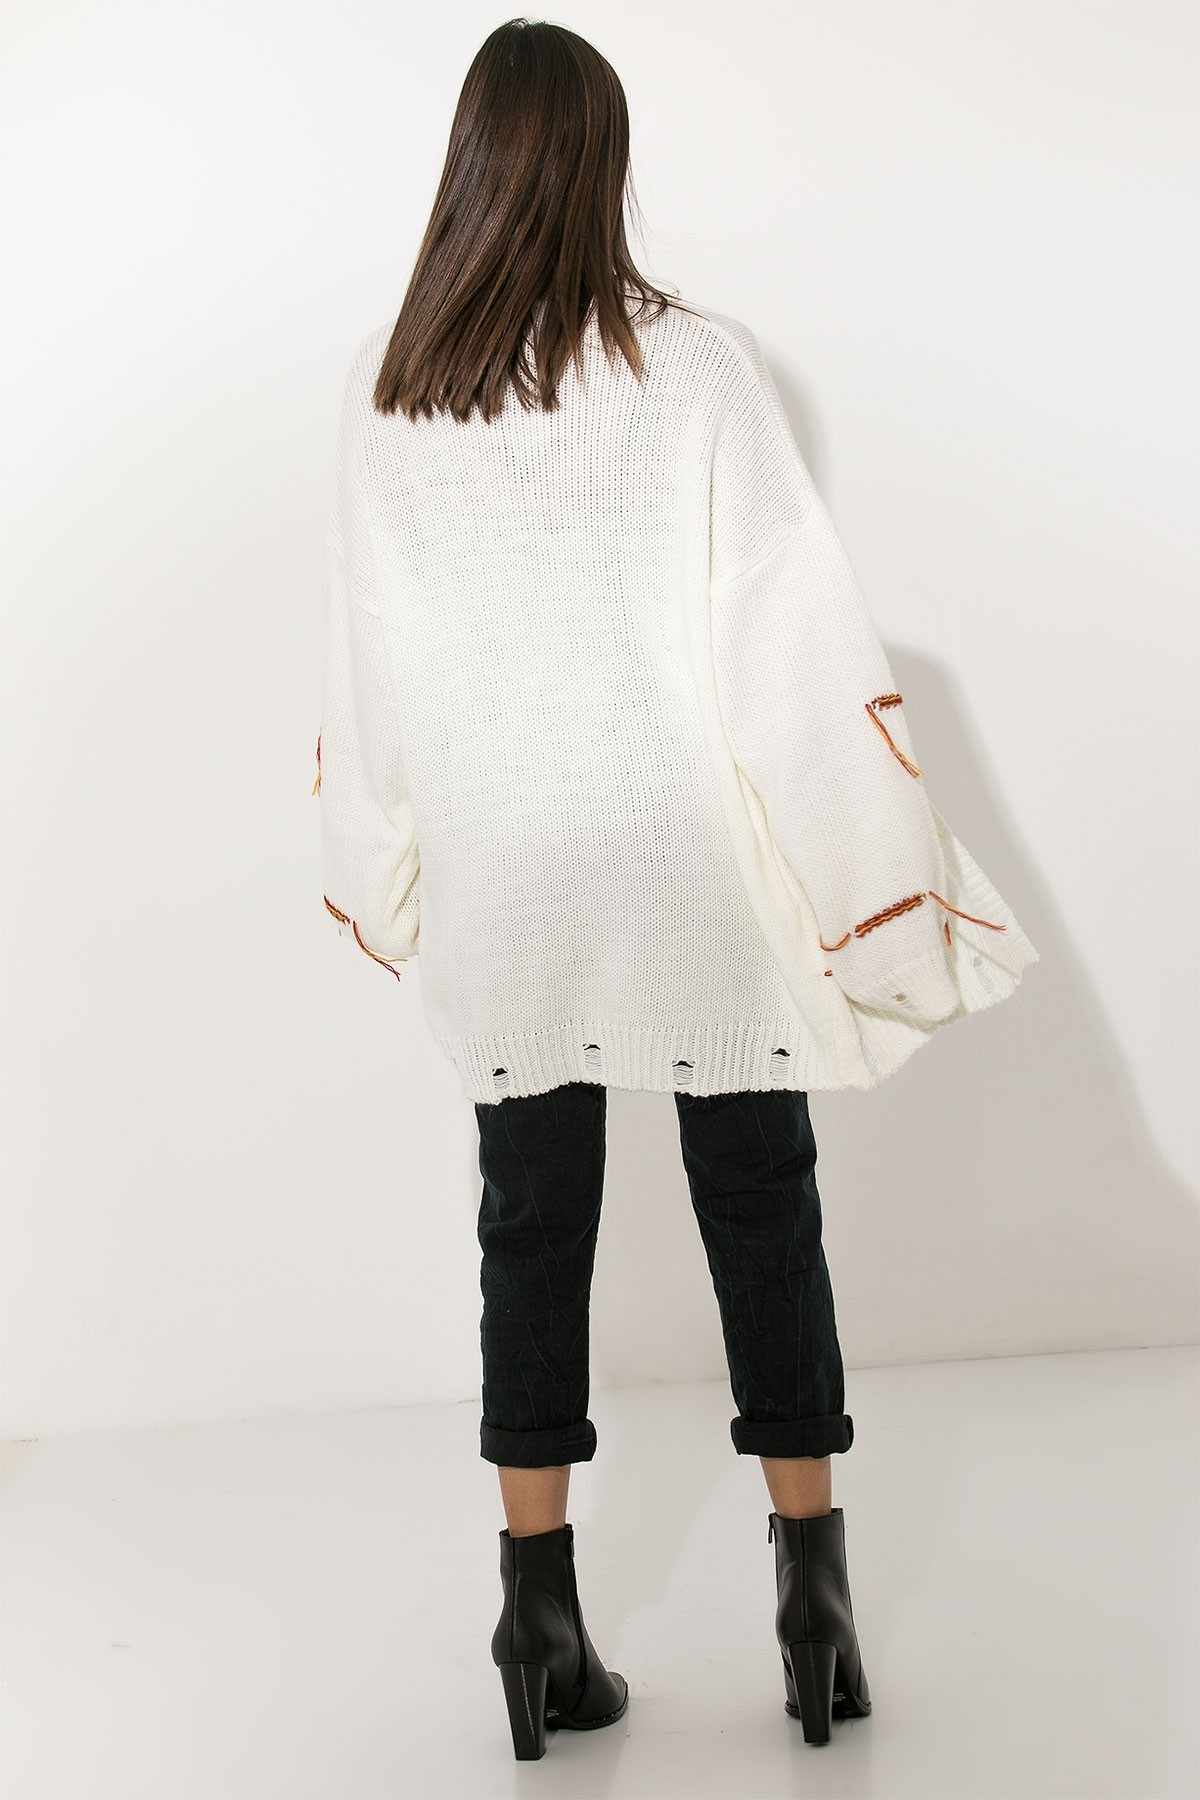 OFF WHITE OVERSIZED KNIT CARDIGAN